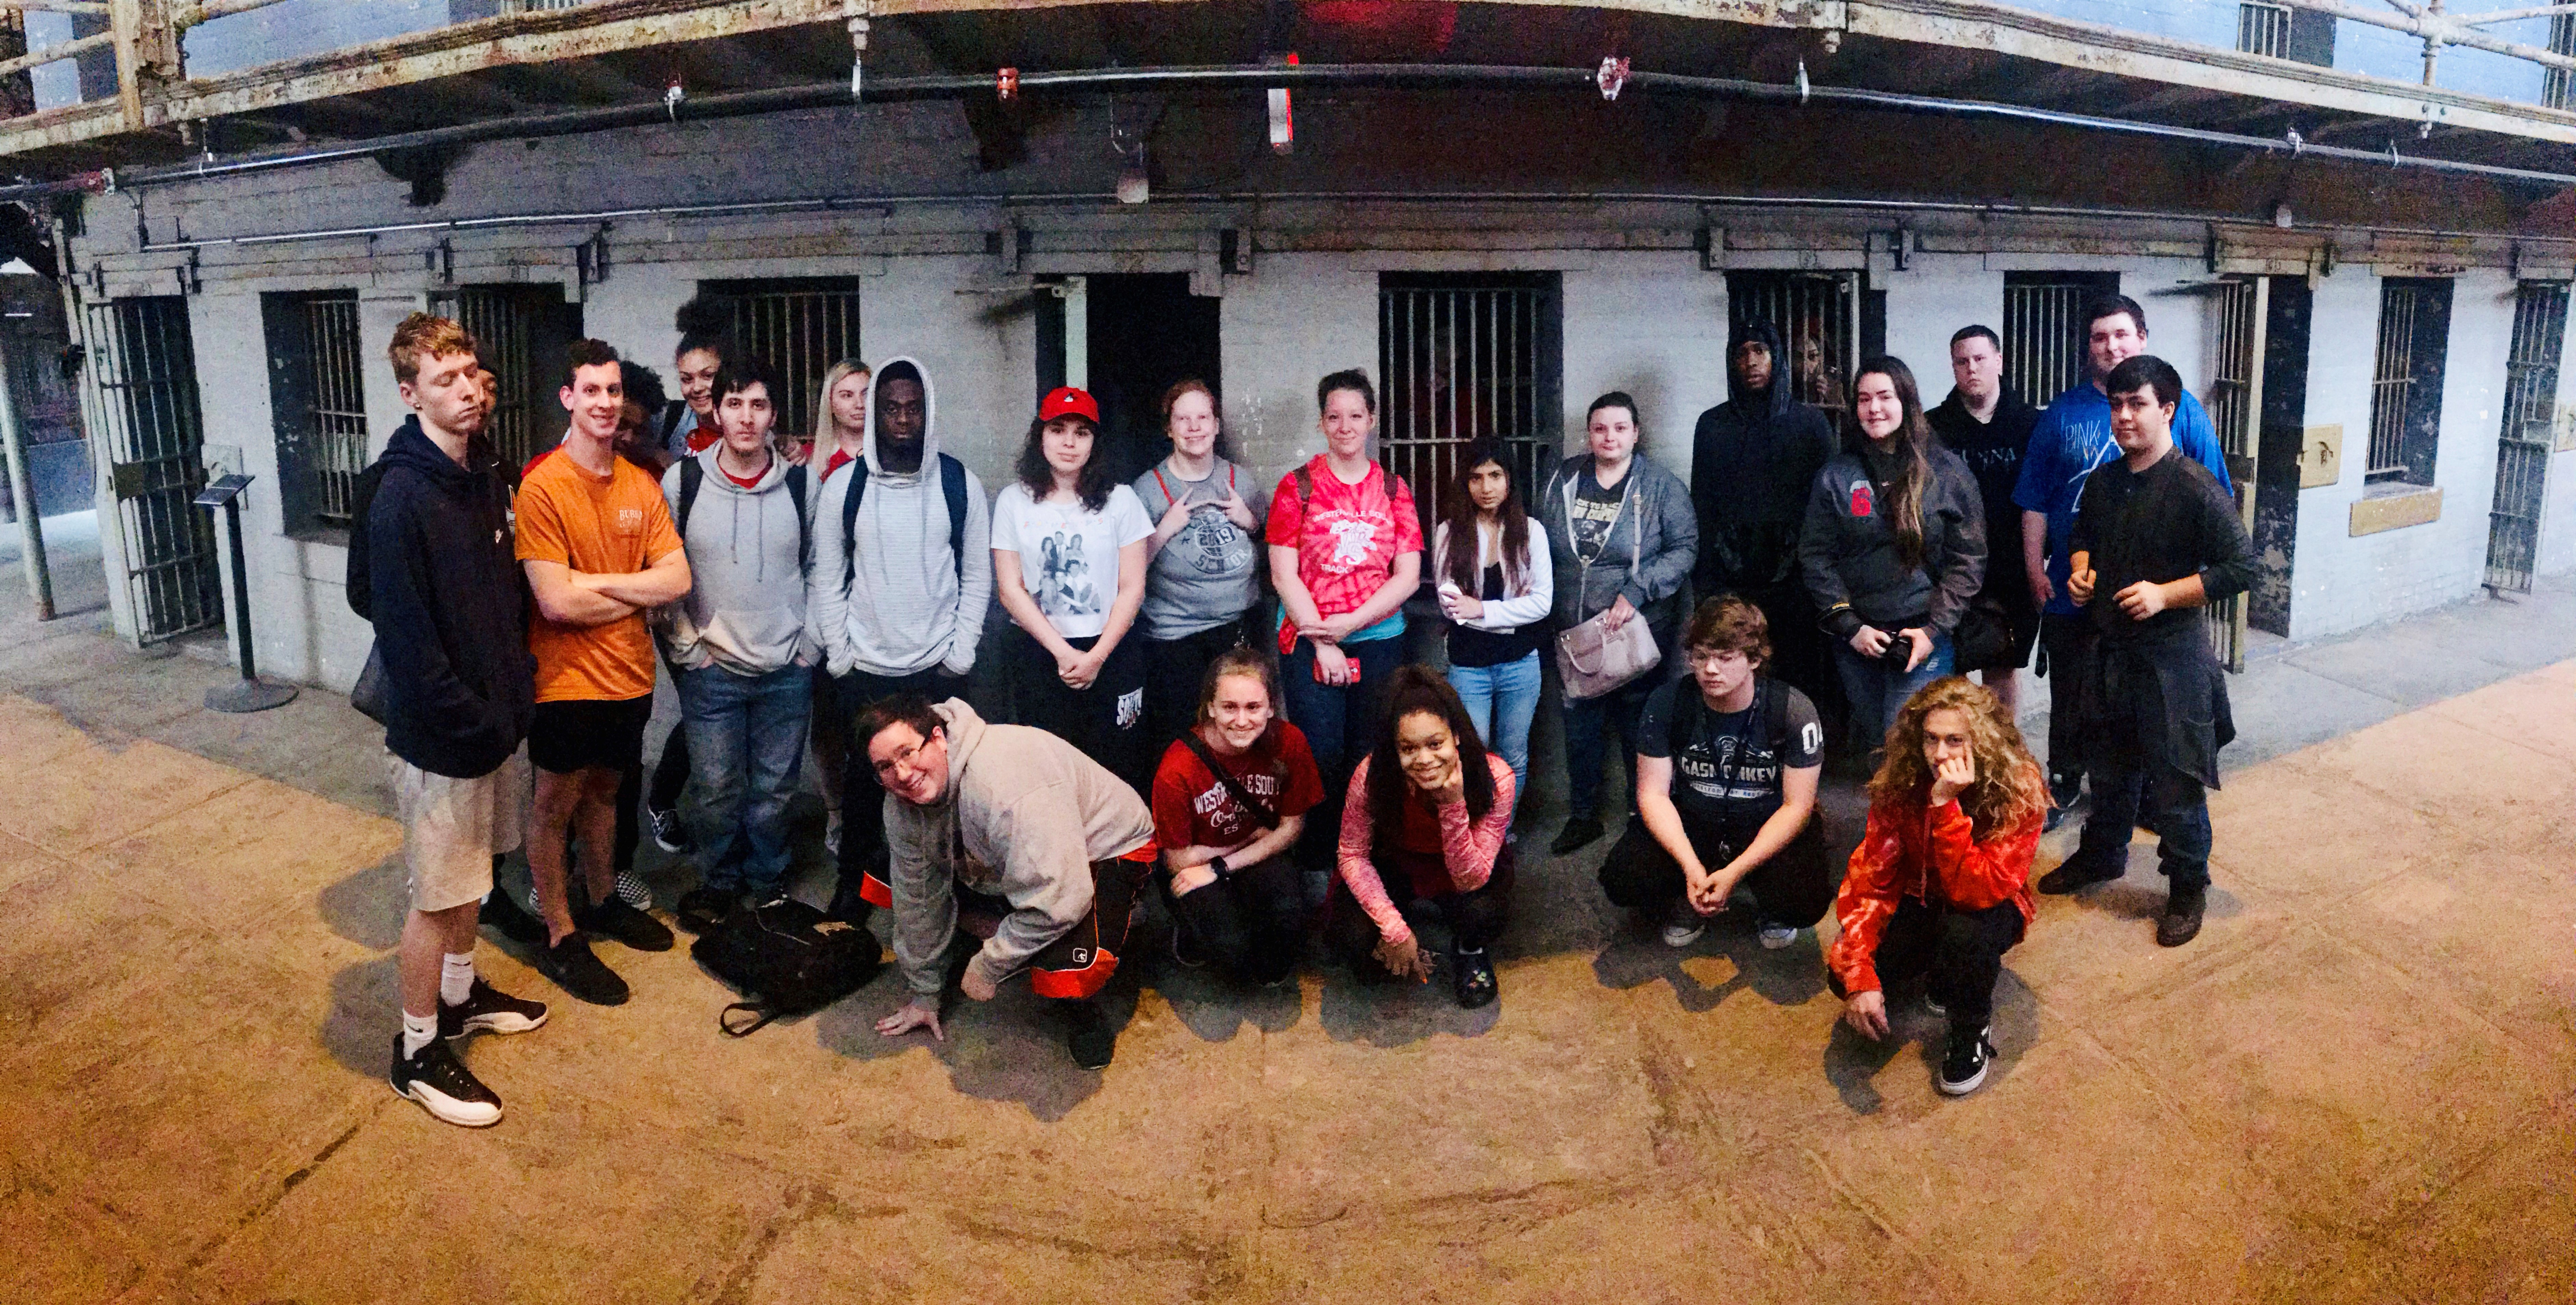 Students at the Ohio State Reformatory